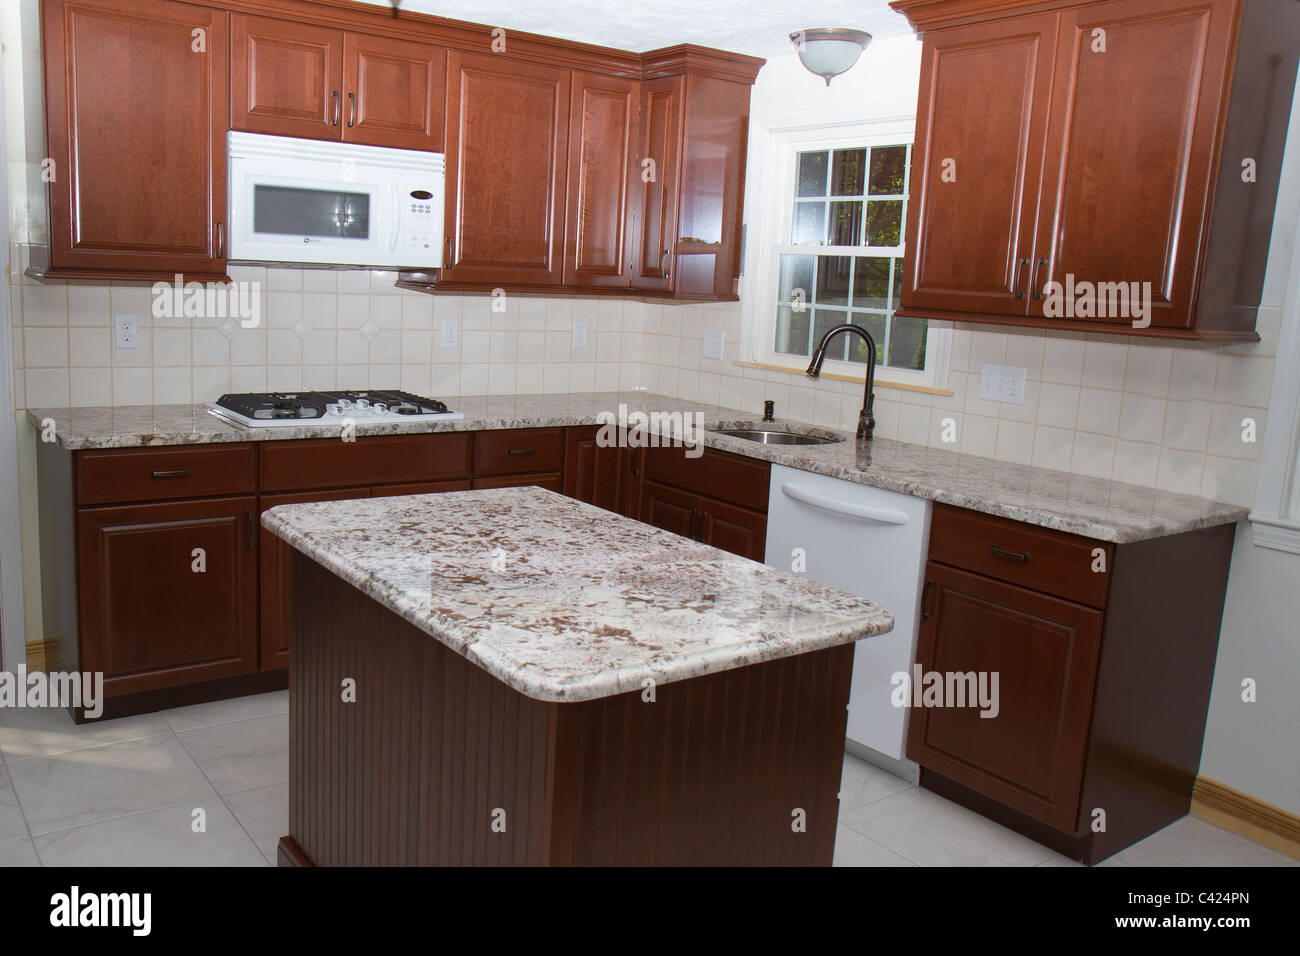 Preparing Cabinets For Granite Countertops New Cherry Cabinets Granite Counter Tops And Ceramic